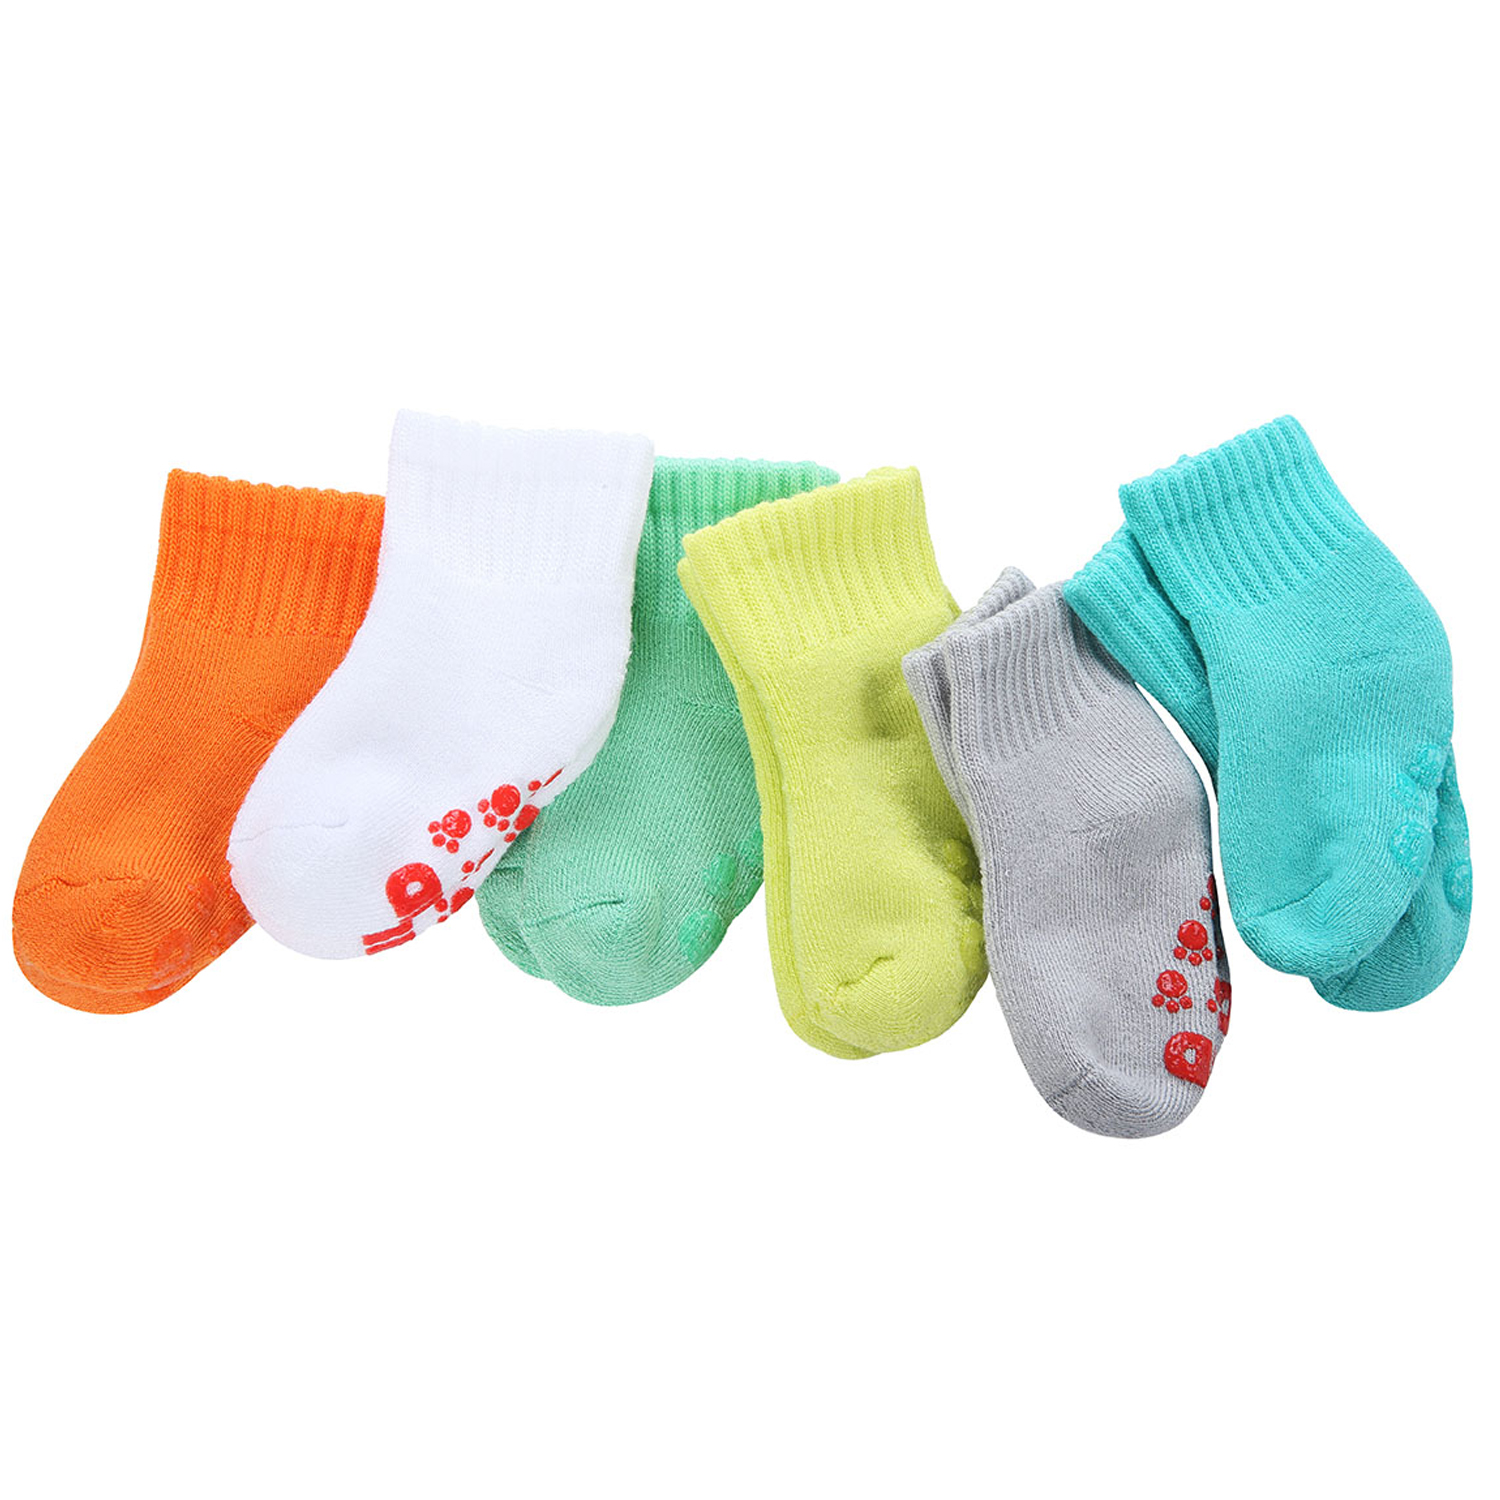 +MD 6 Pairs Baby Bamboo Socks Ultra Soft Full Cushioned Warm Infant Toddler Non-Skid Socks